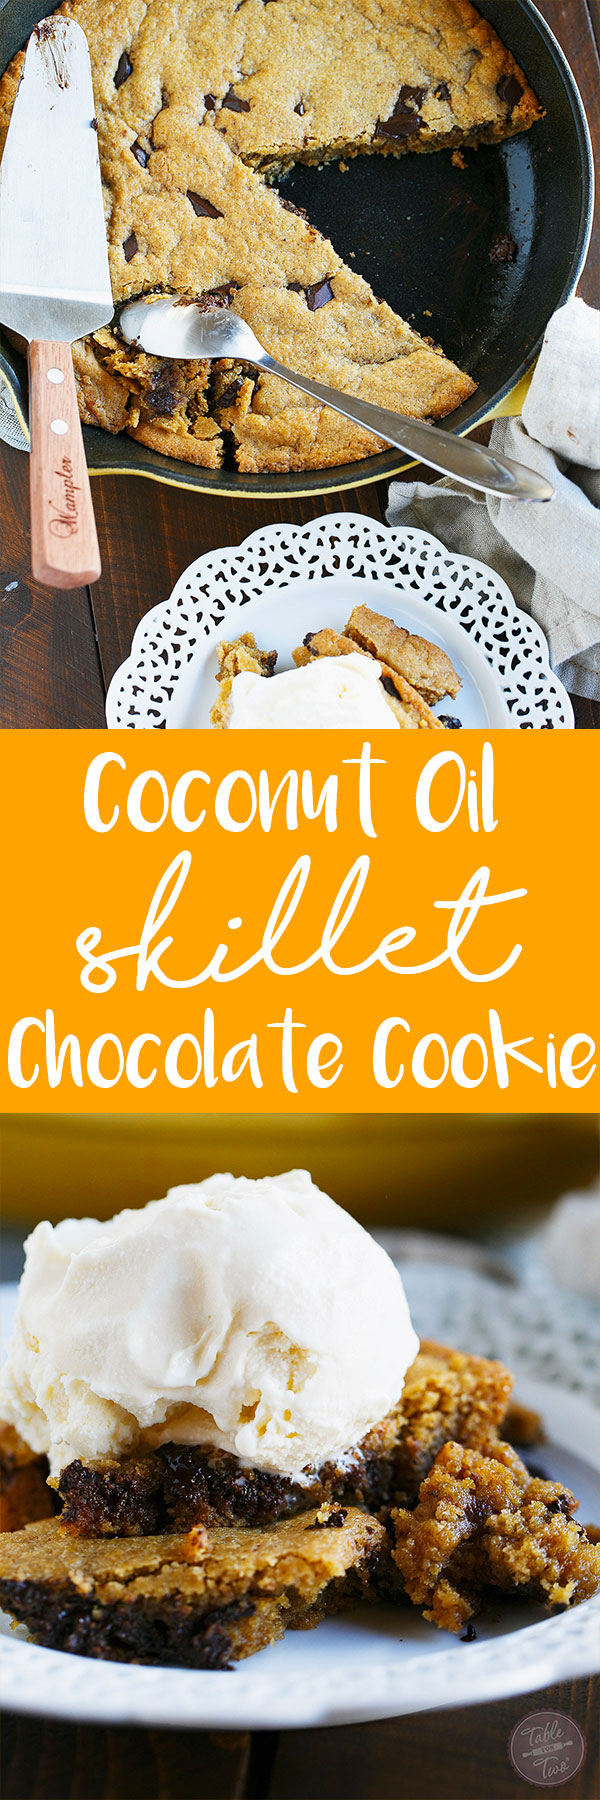 If you love coconut, chocolate, crispy, chewy, AND soft cookies....then this coconut oil skillet chocolate chunk cookie is made for you!!